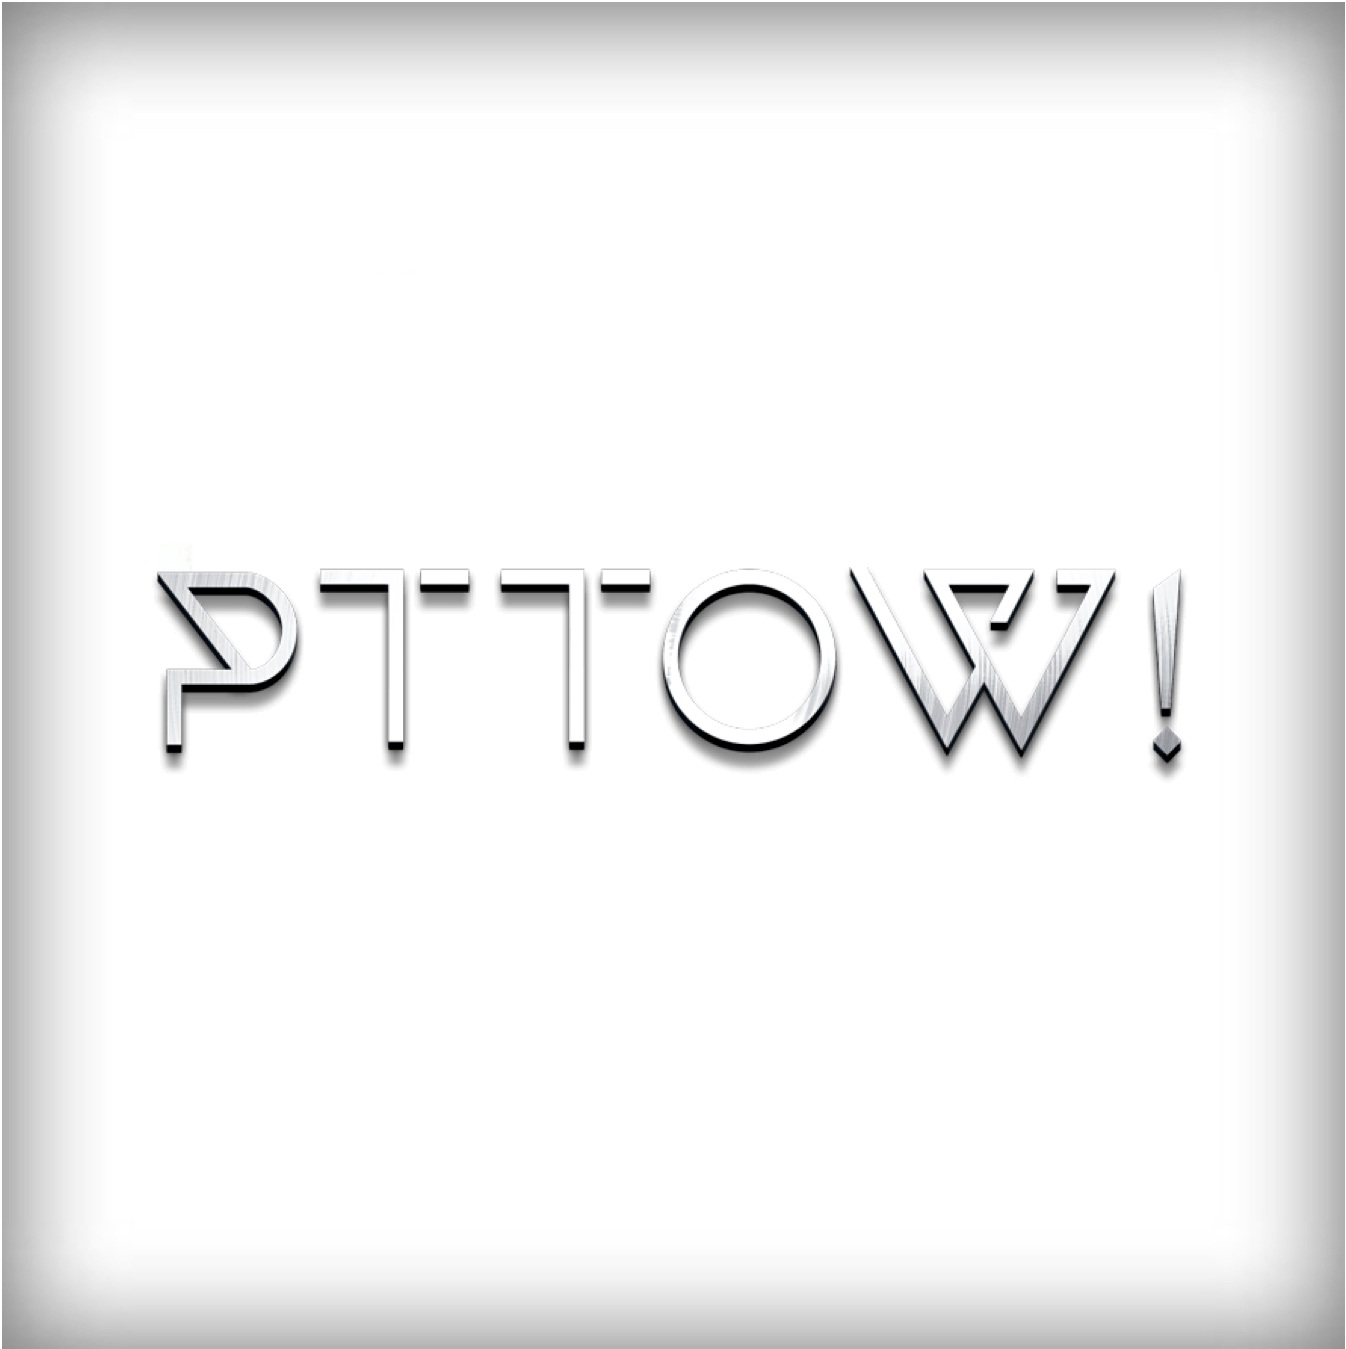 PTTOW!